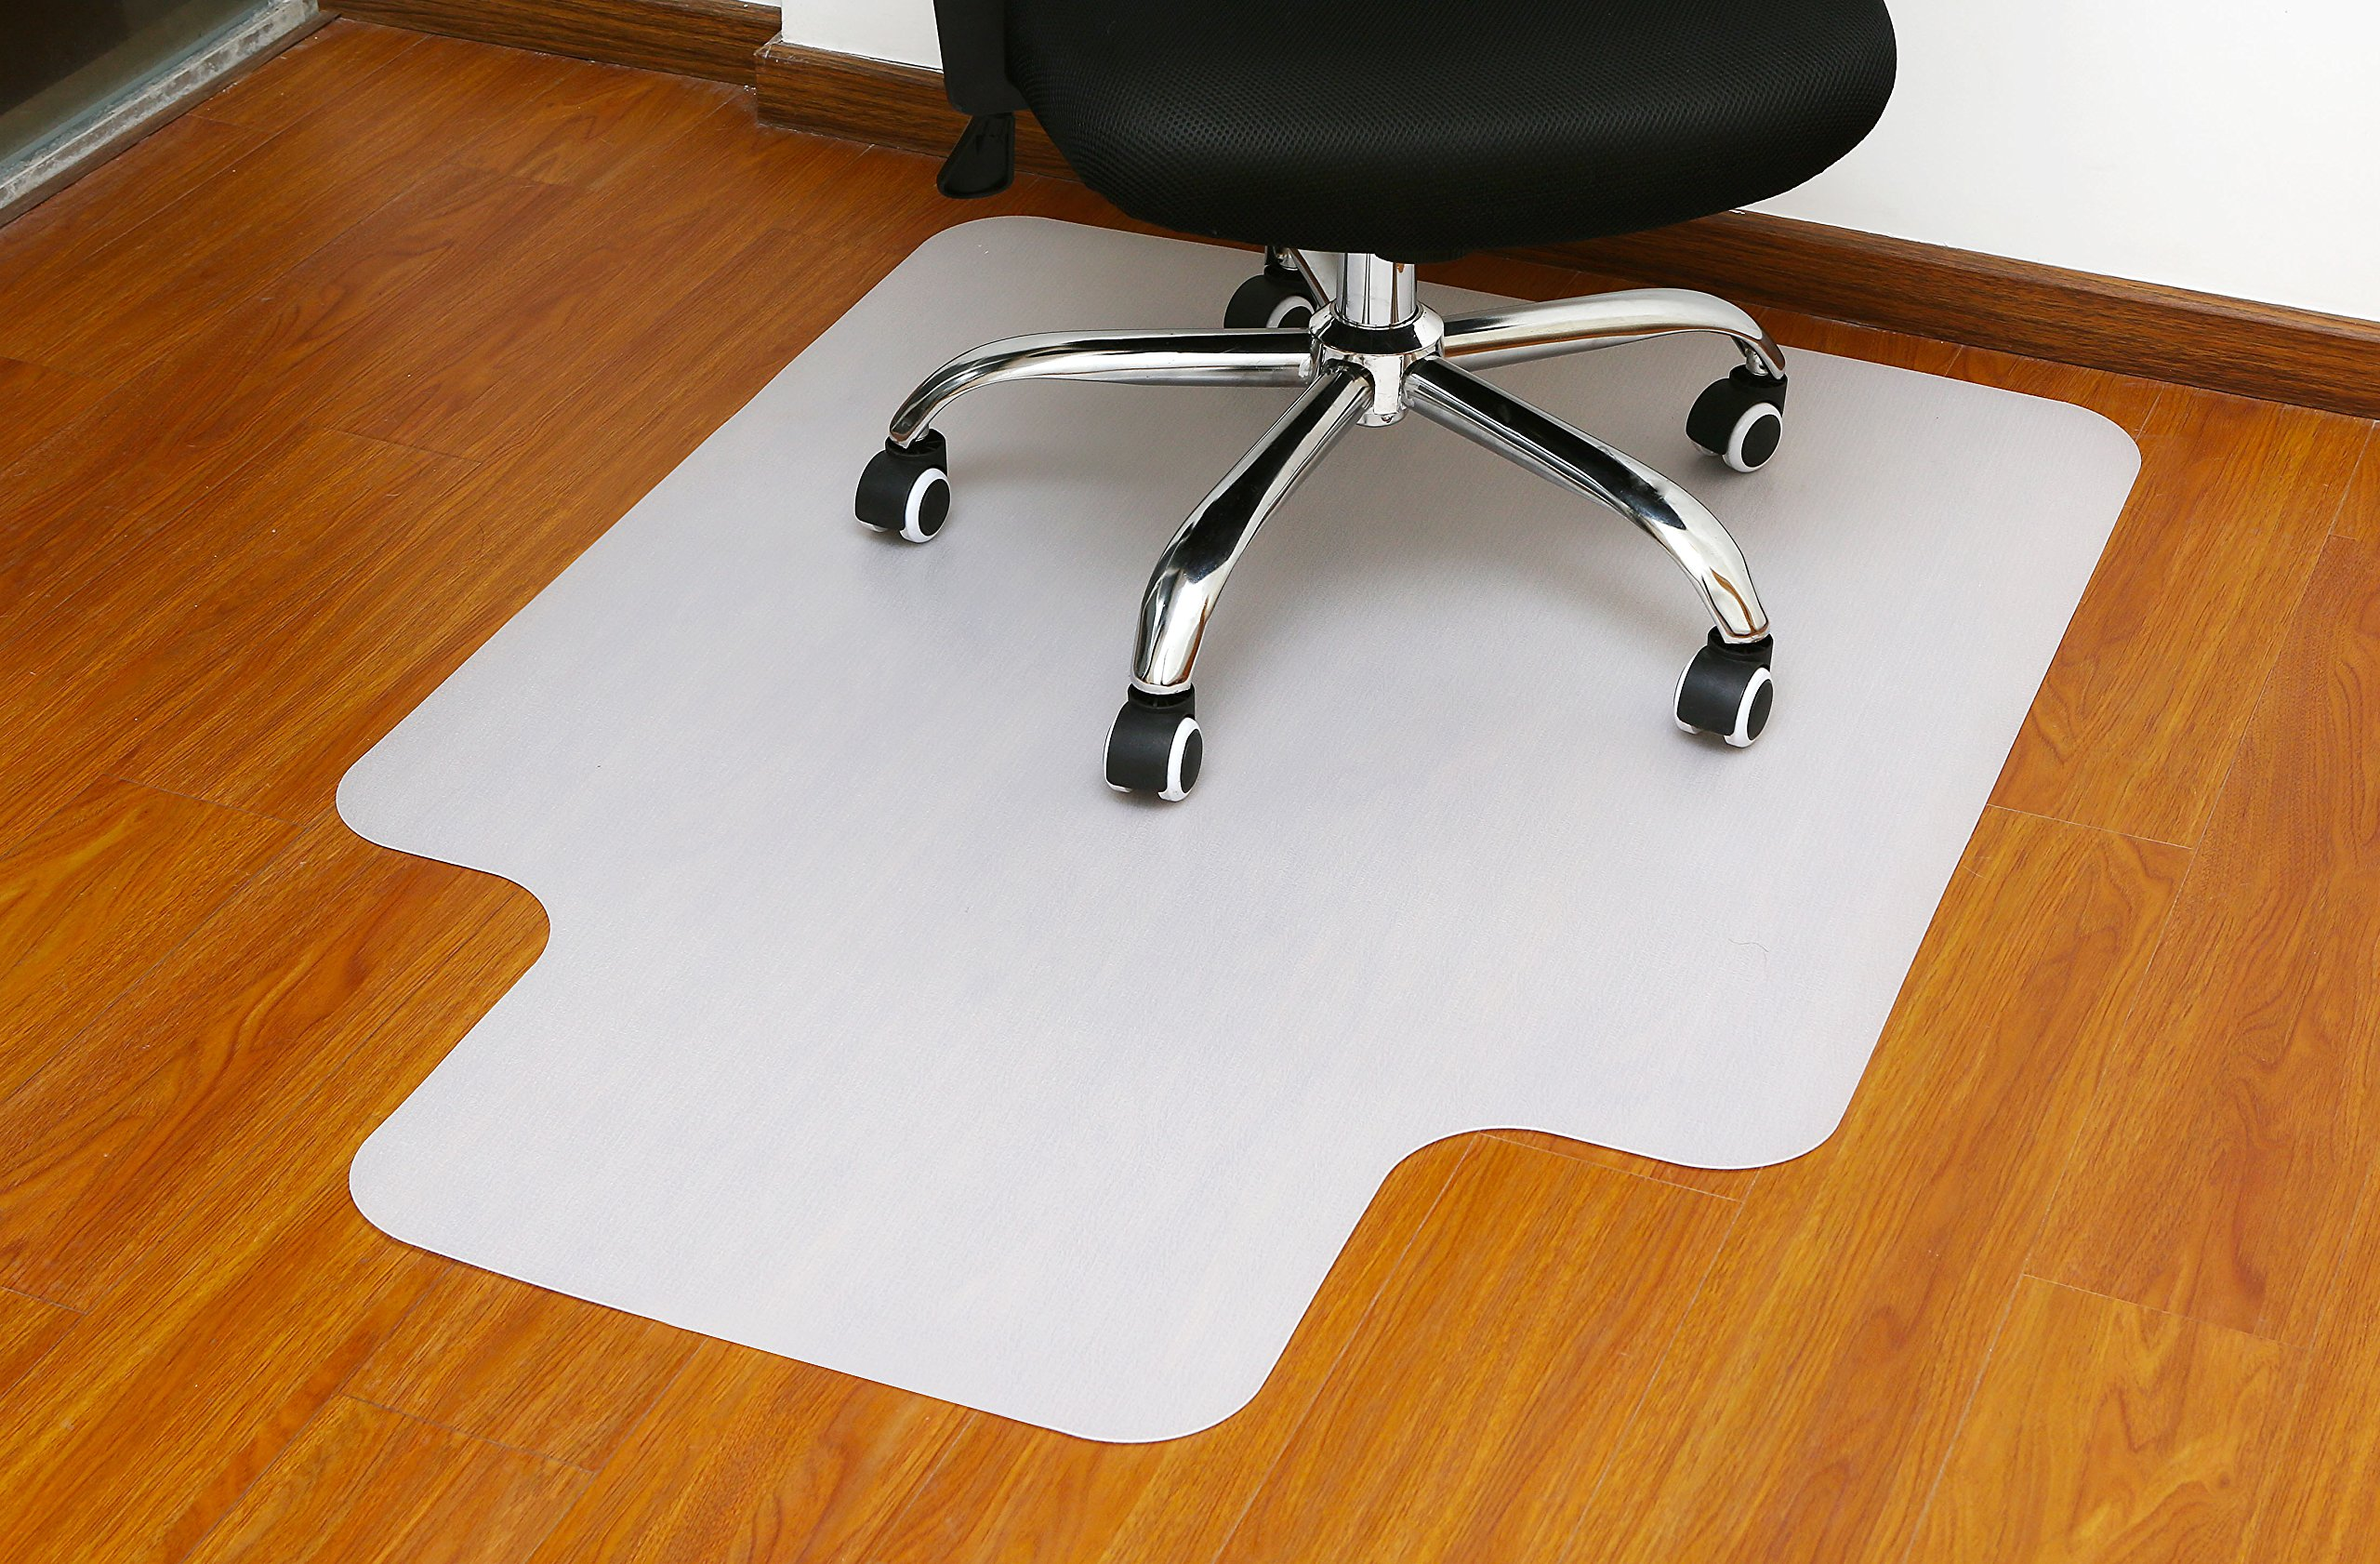 Polytene Office Chair Mat 48''x36''Hard Floor Protection with Lip Anti Slide Coating on The Underside,White